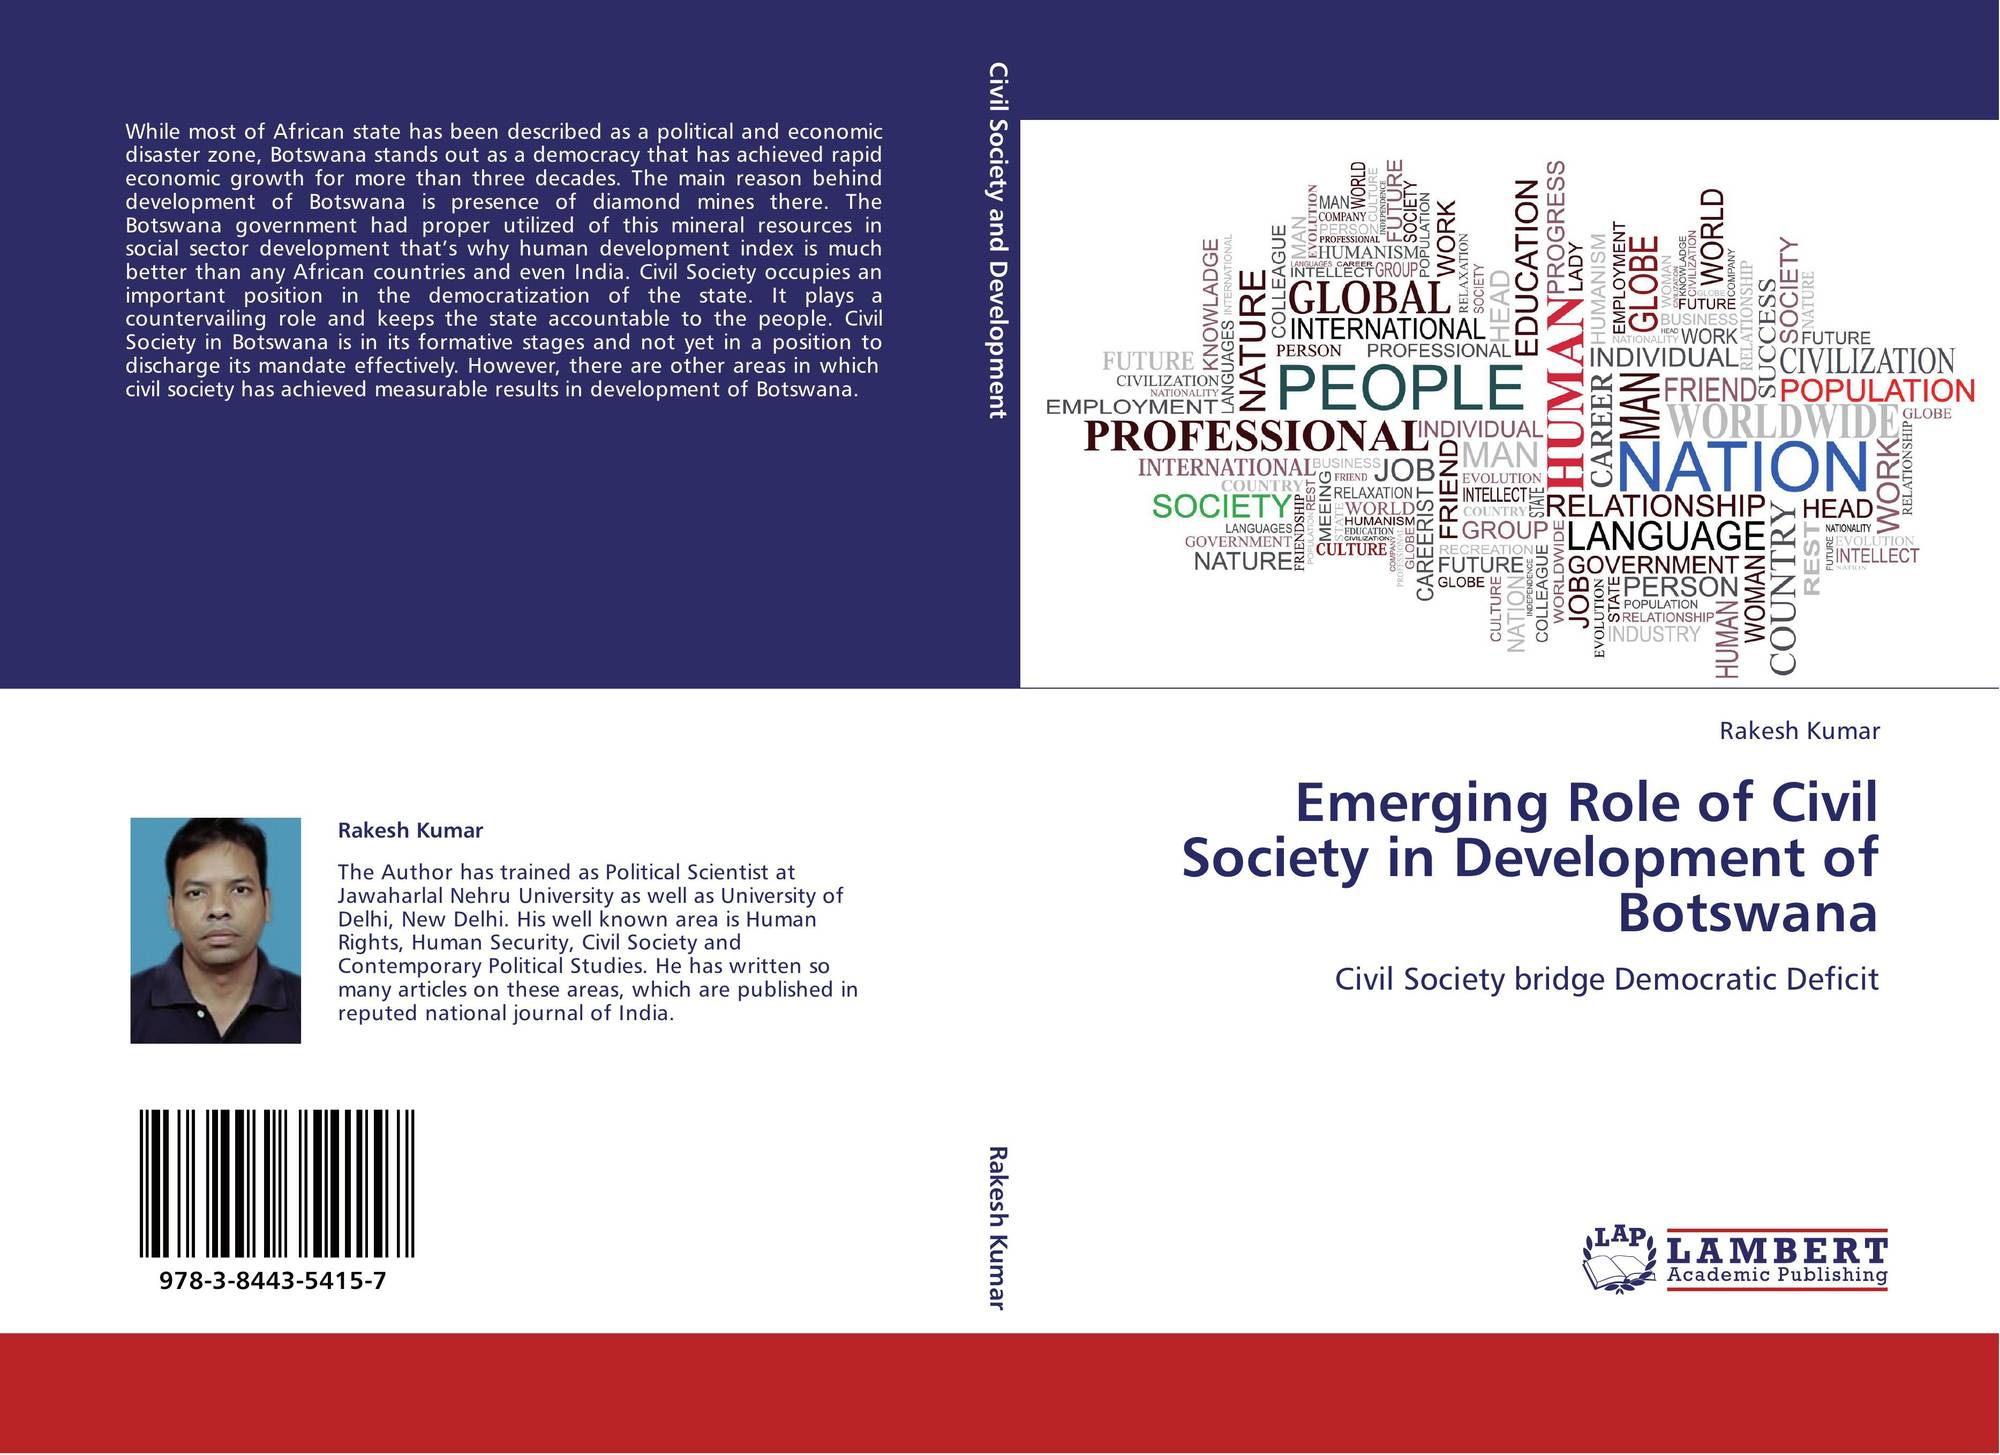 the role of the civil society in the democratic growth of sudan The role of media in democracy: a strategic increased development of a politically active civil society provides a important role it plays in democratic.